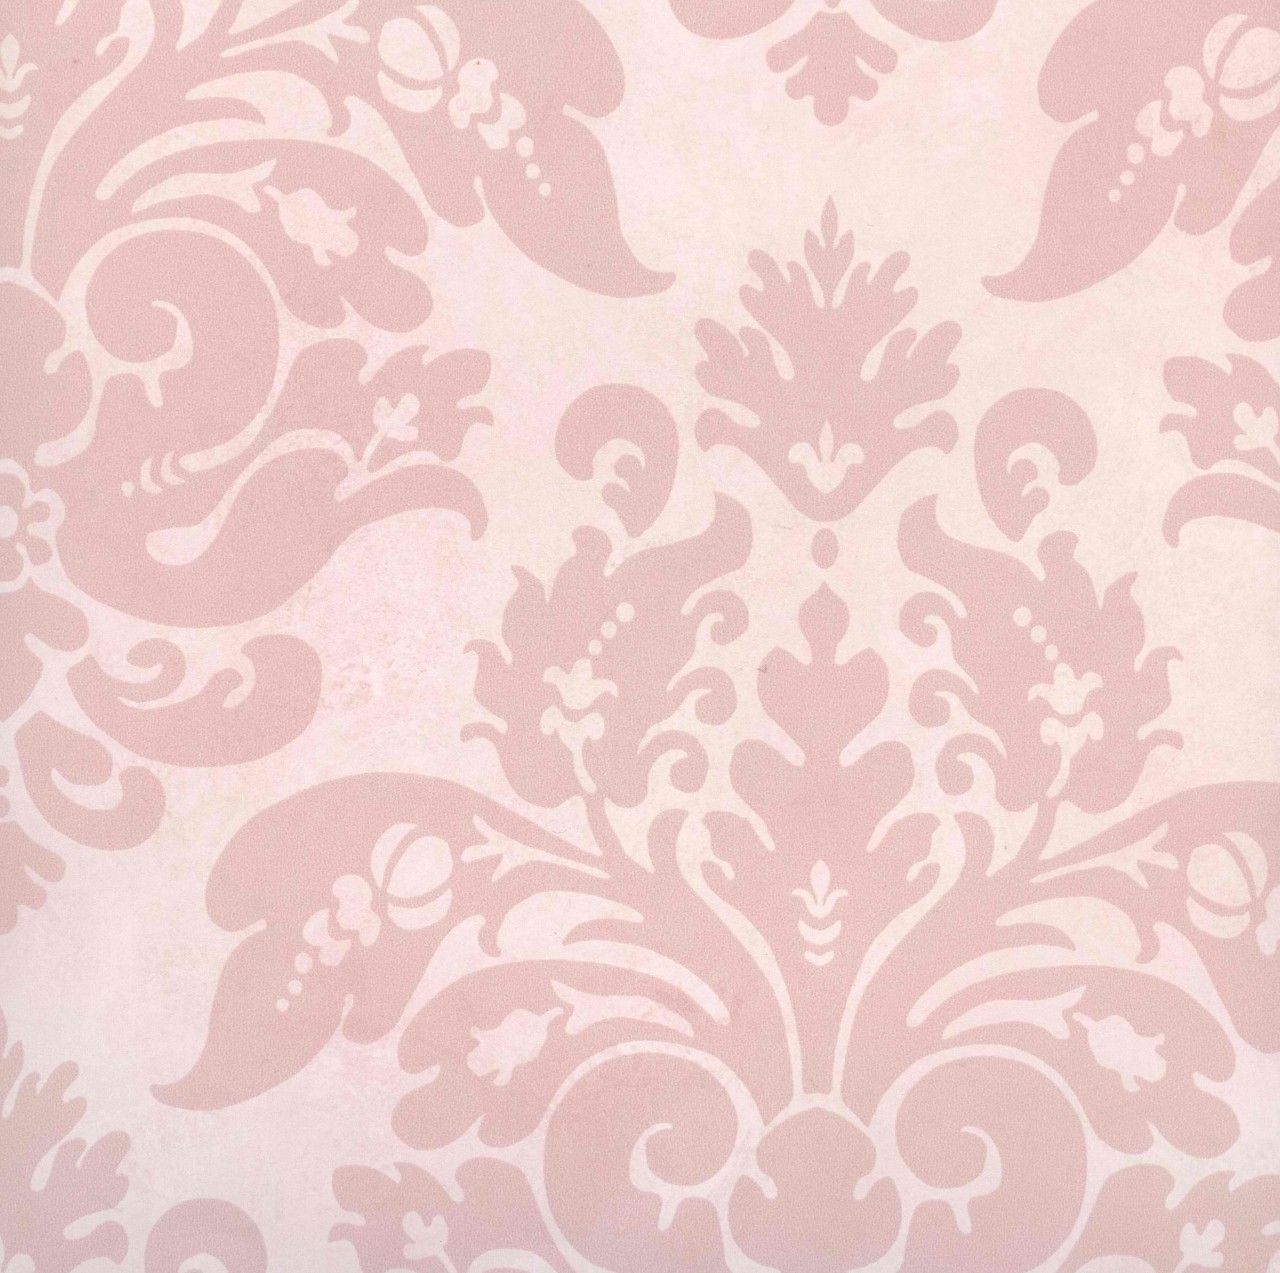 purple wallpaper damask Red Rose CKB77721 Peony Damask